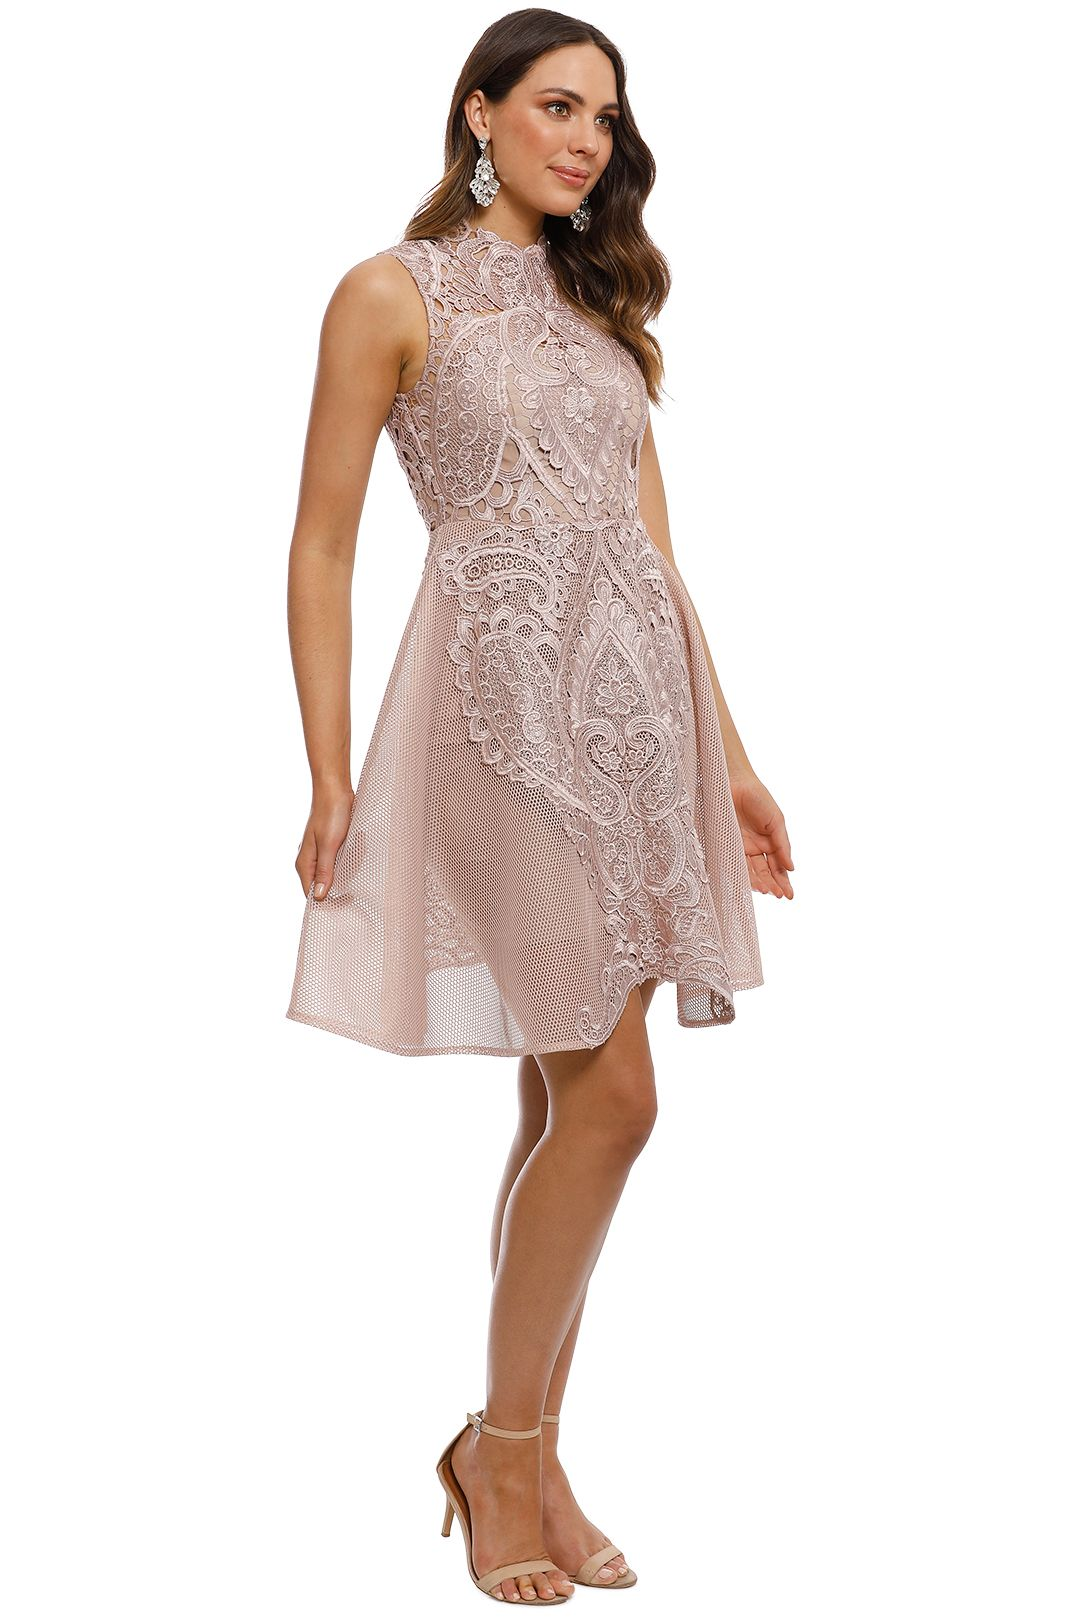 Grace and Hart - Center Stage Flare Midi Dress - Nude - Side